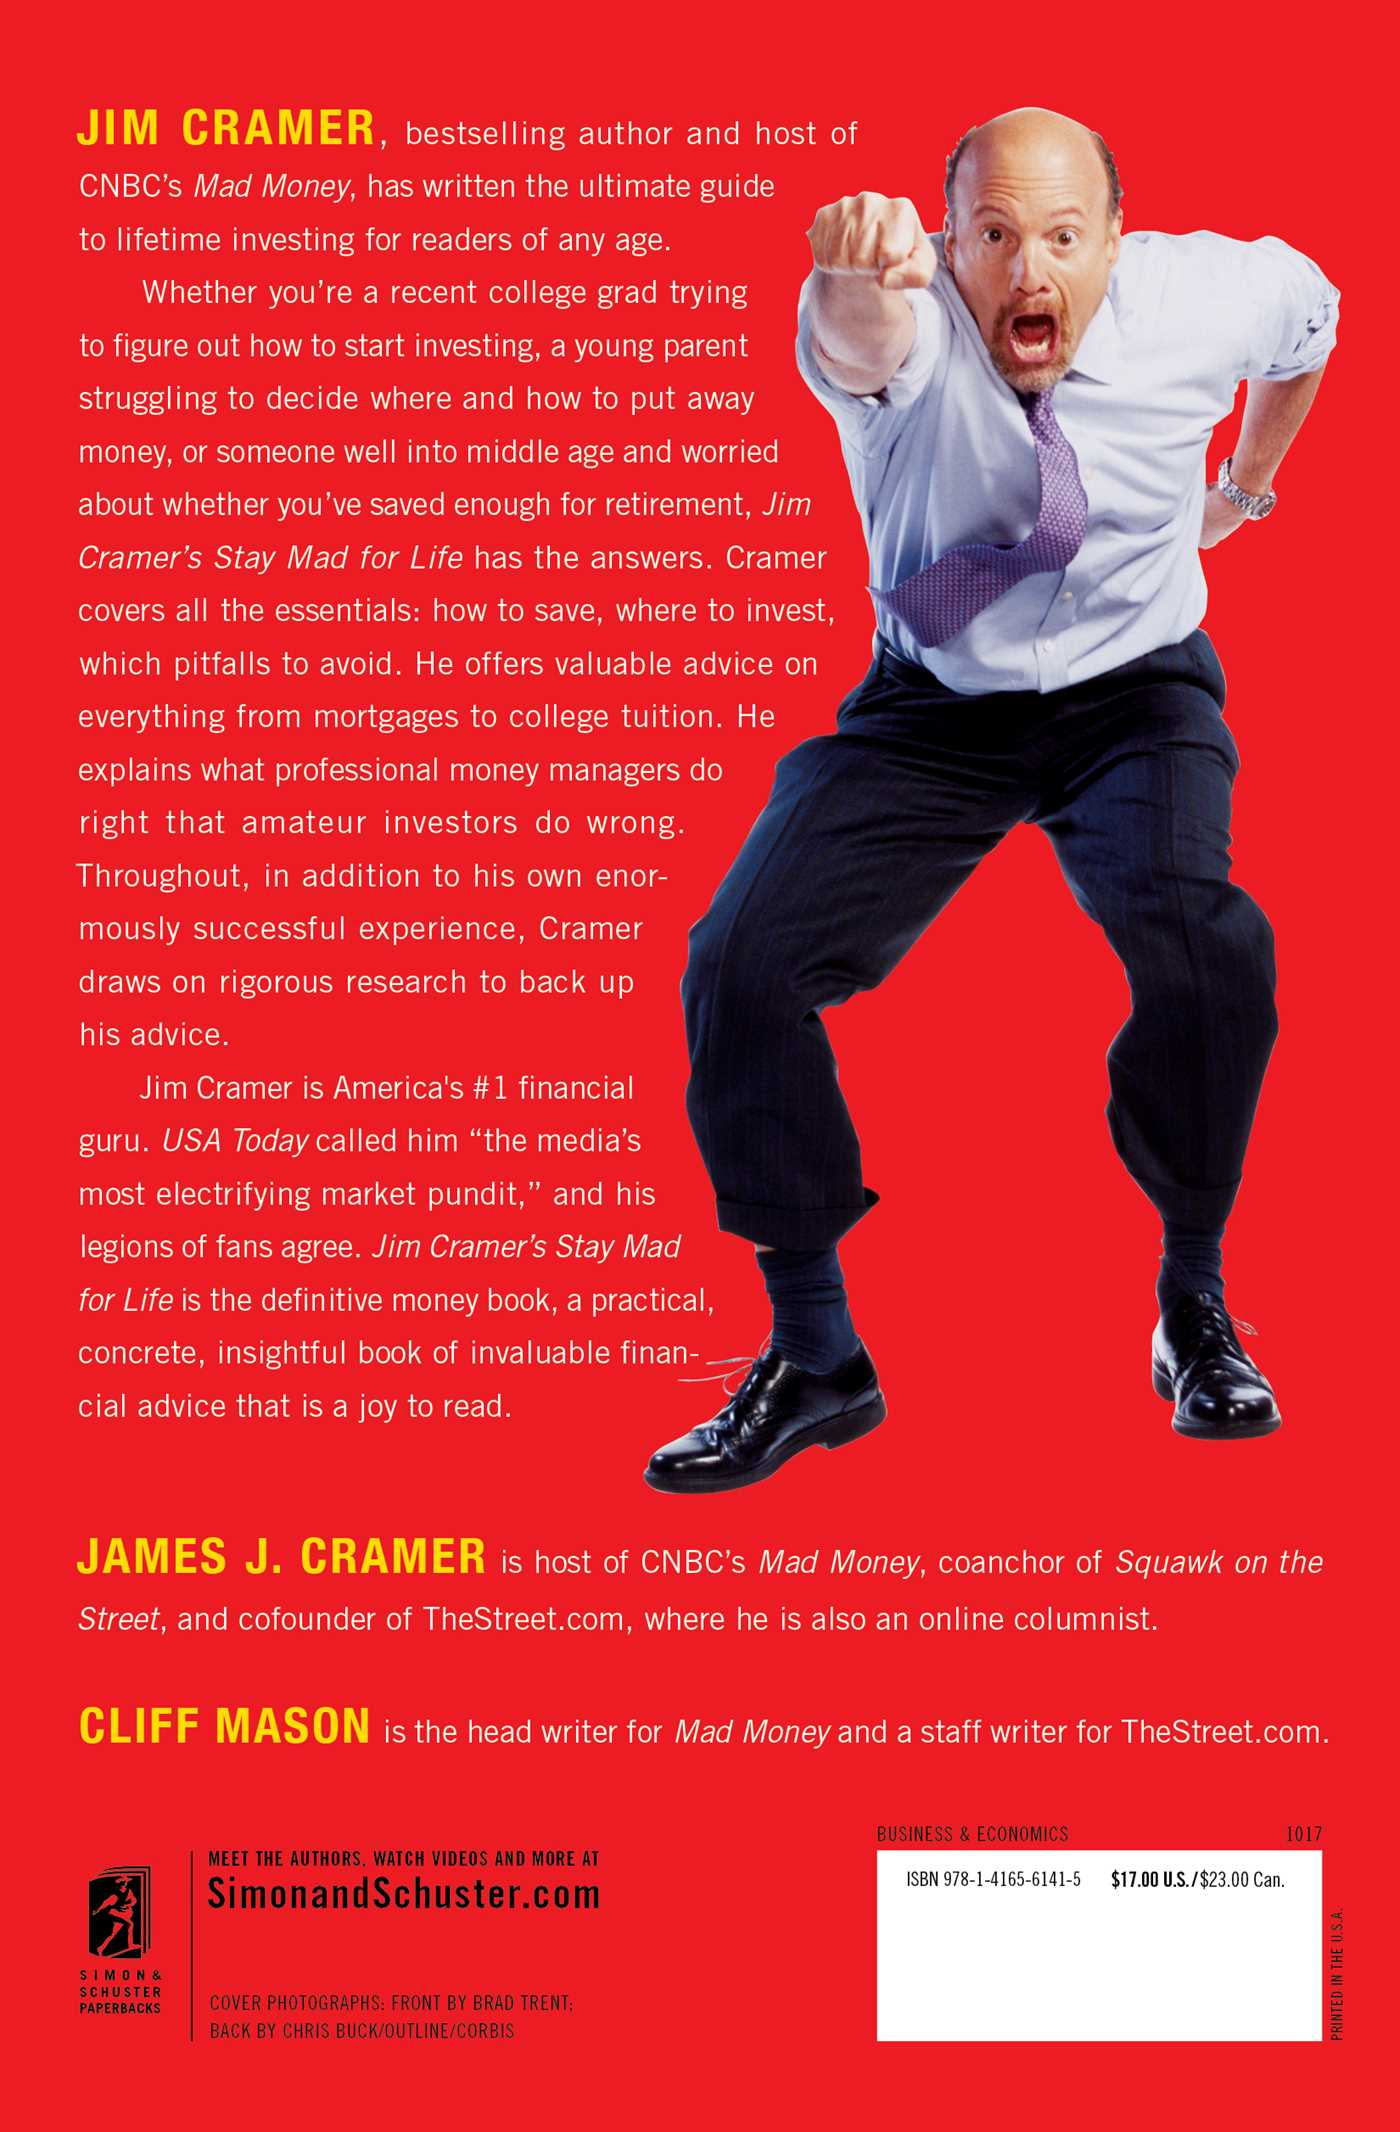 Jim cramers stay mad for life 9781416561415 hr back